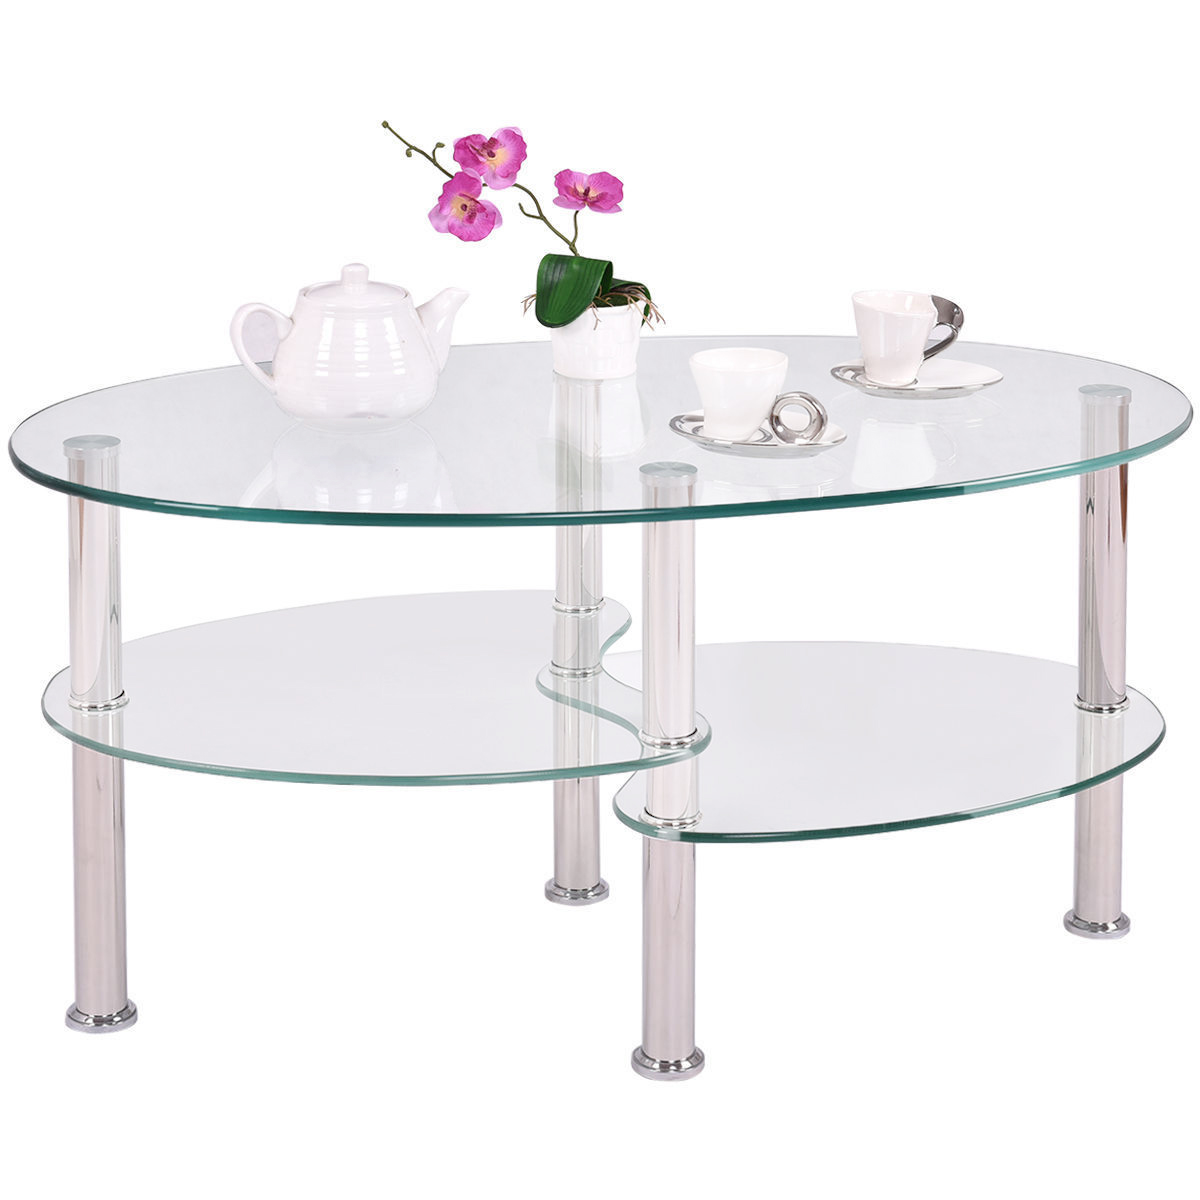 Ktaxon 3 Tier Tempered Glass Shelf Oval Side Coffee Table End Table Living  Room NEW